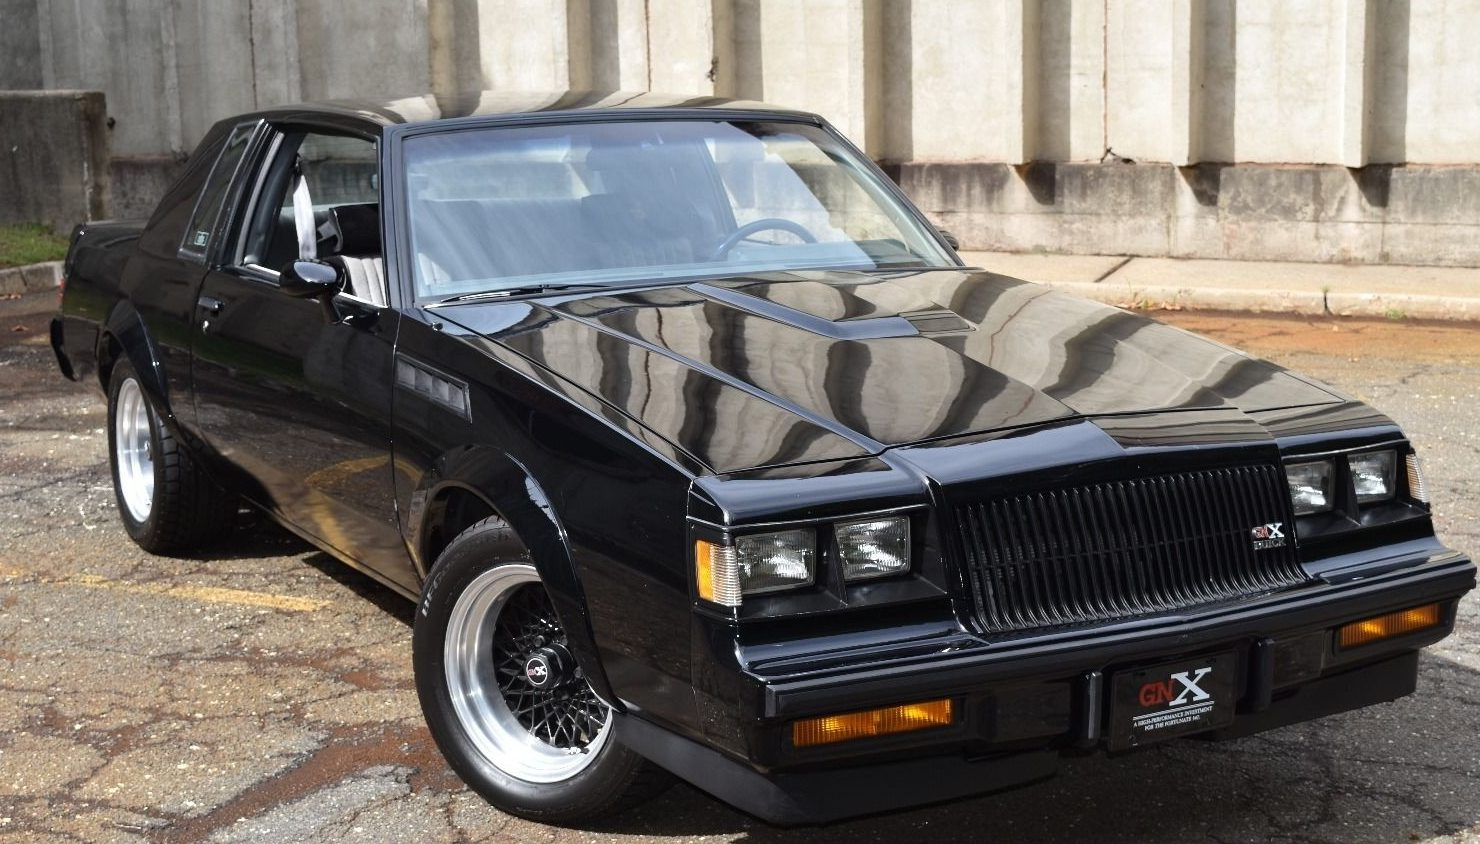 Gnx E on 1987 Buick Grand National